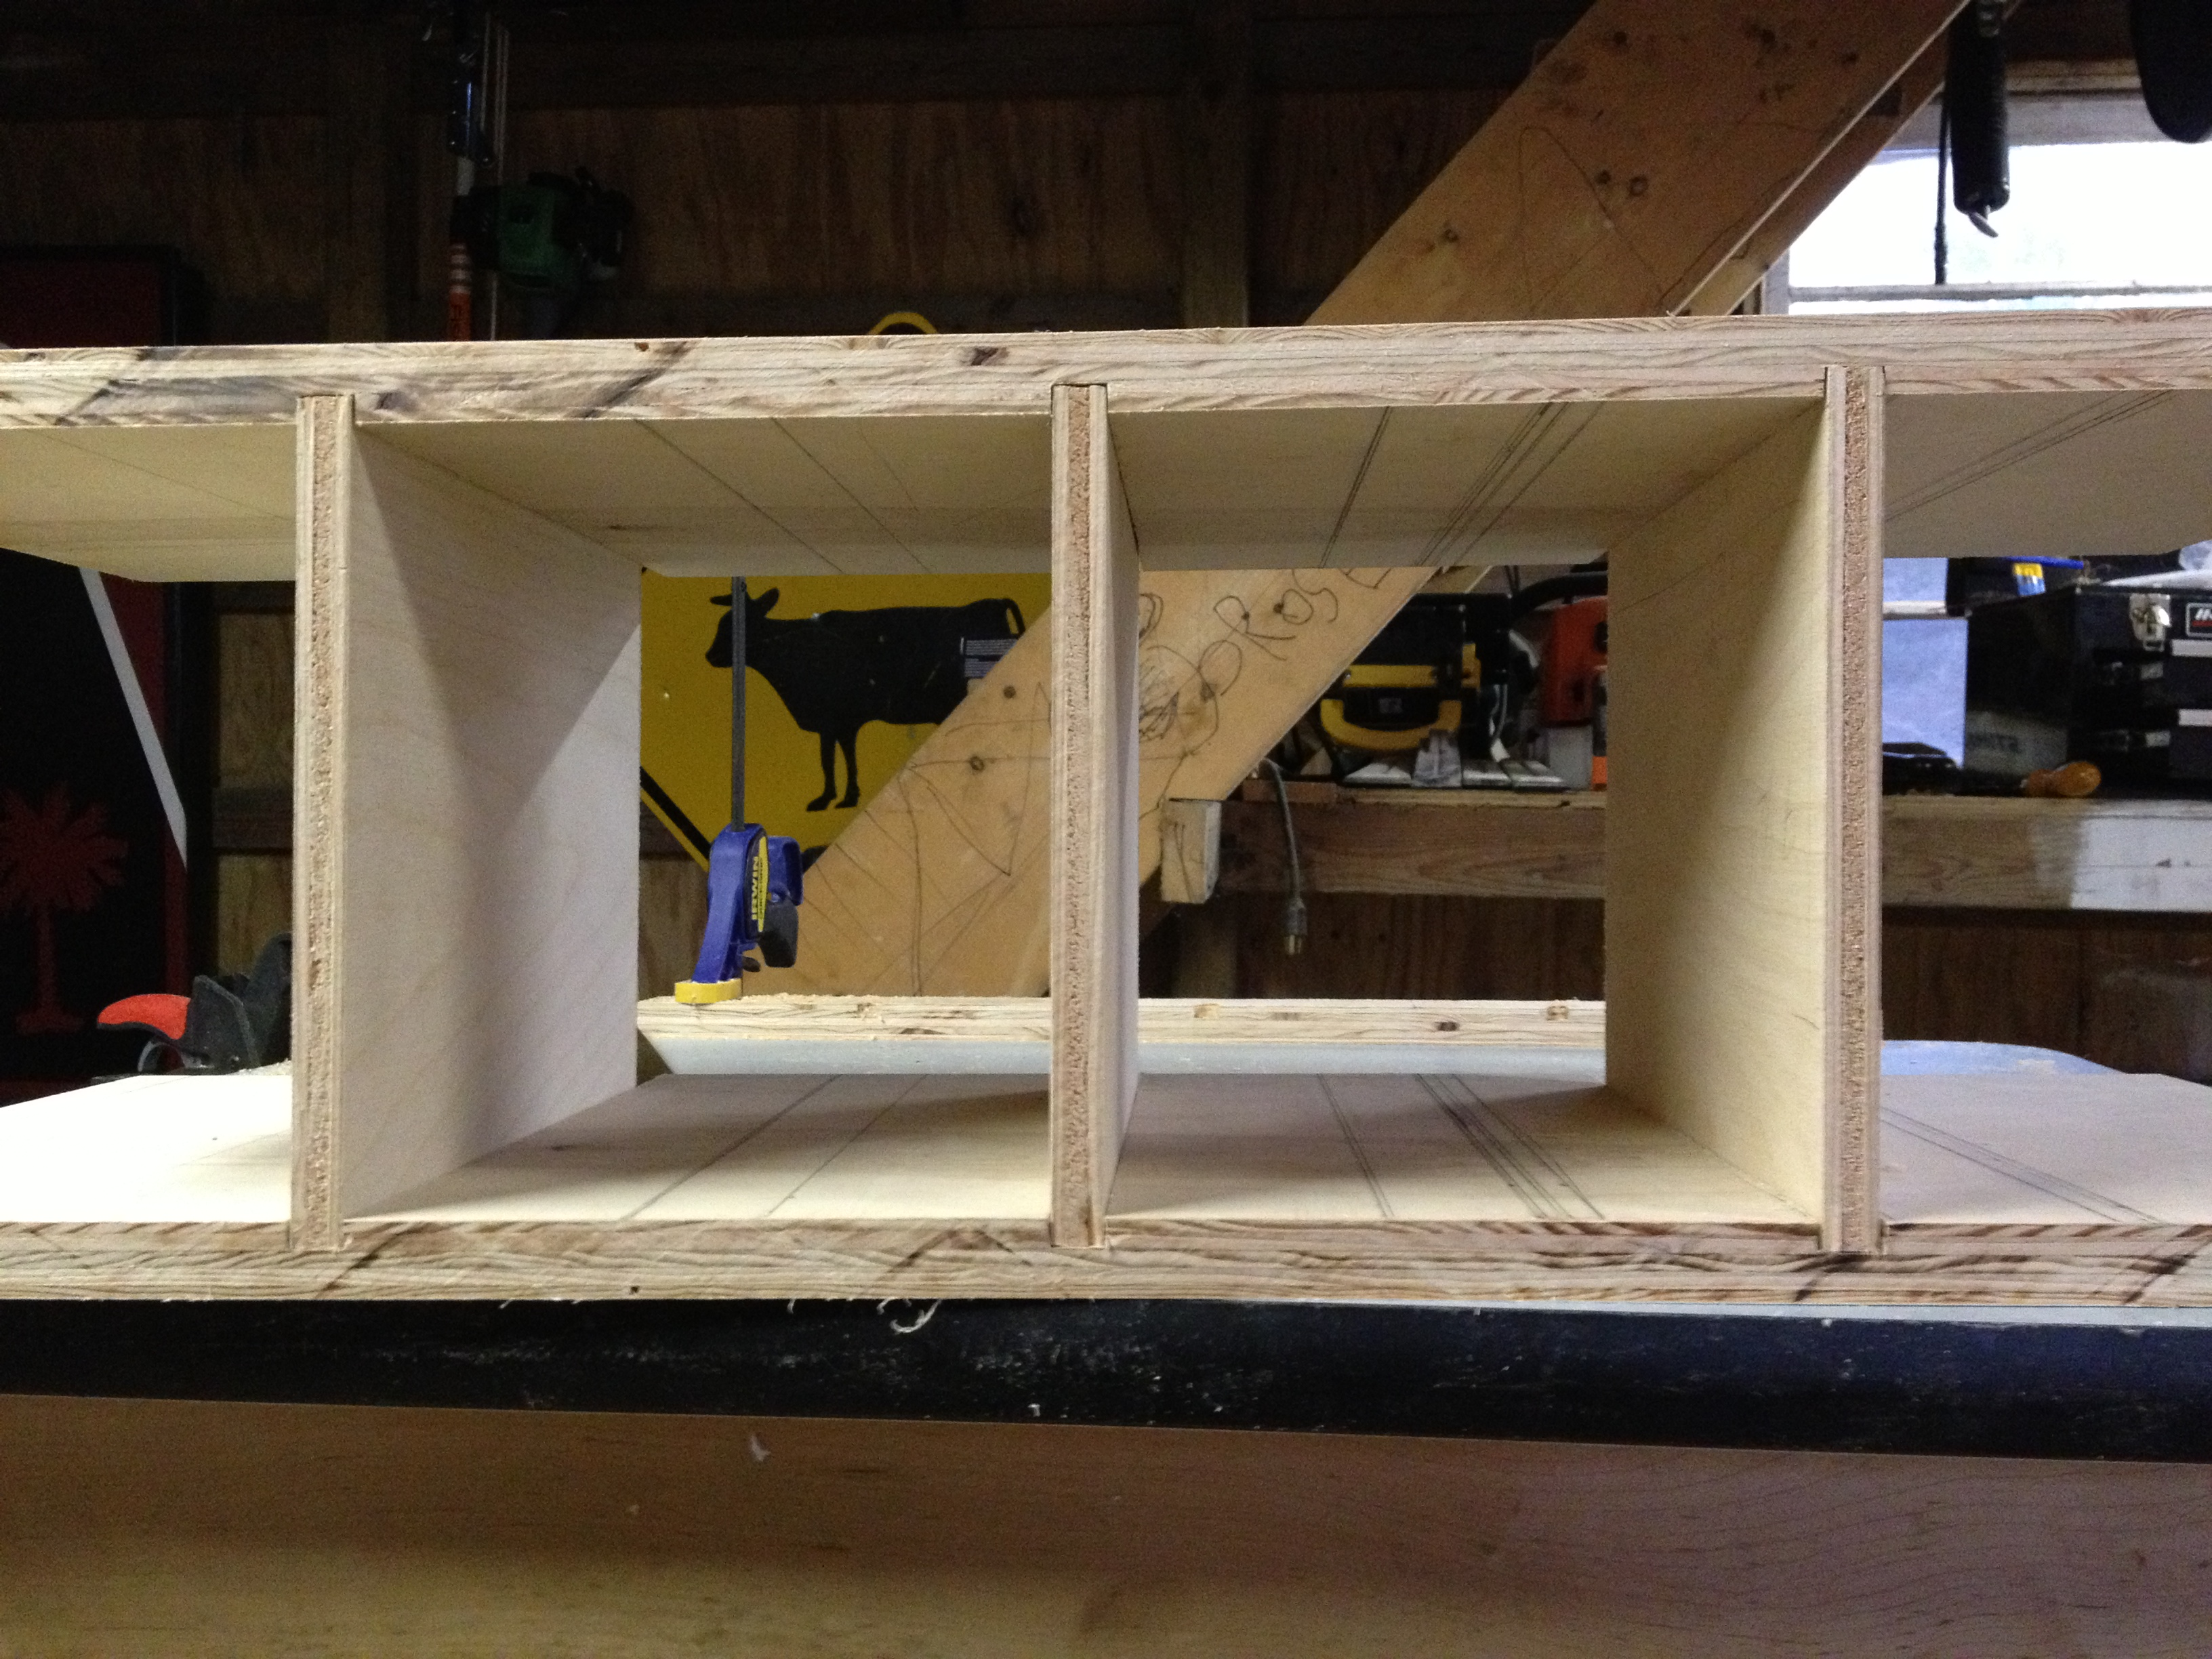 Dry fit dividers